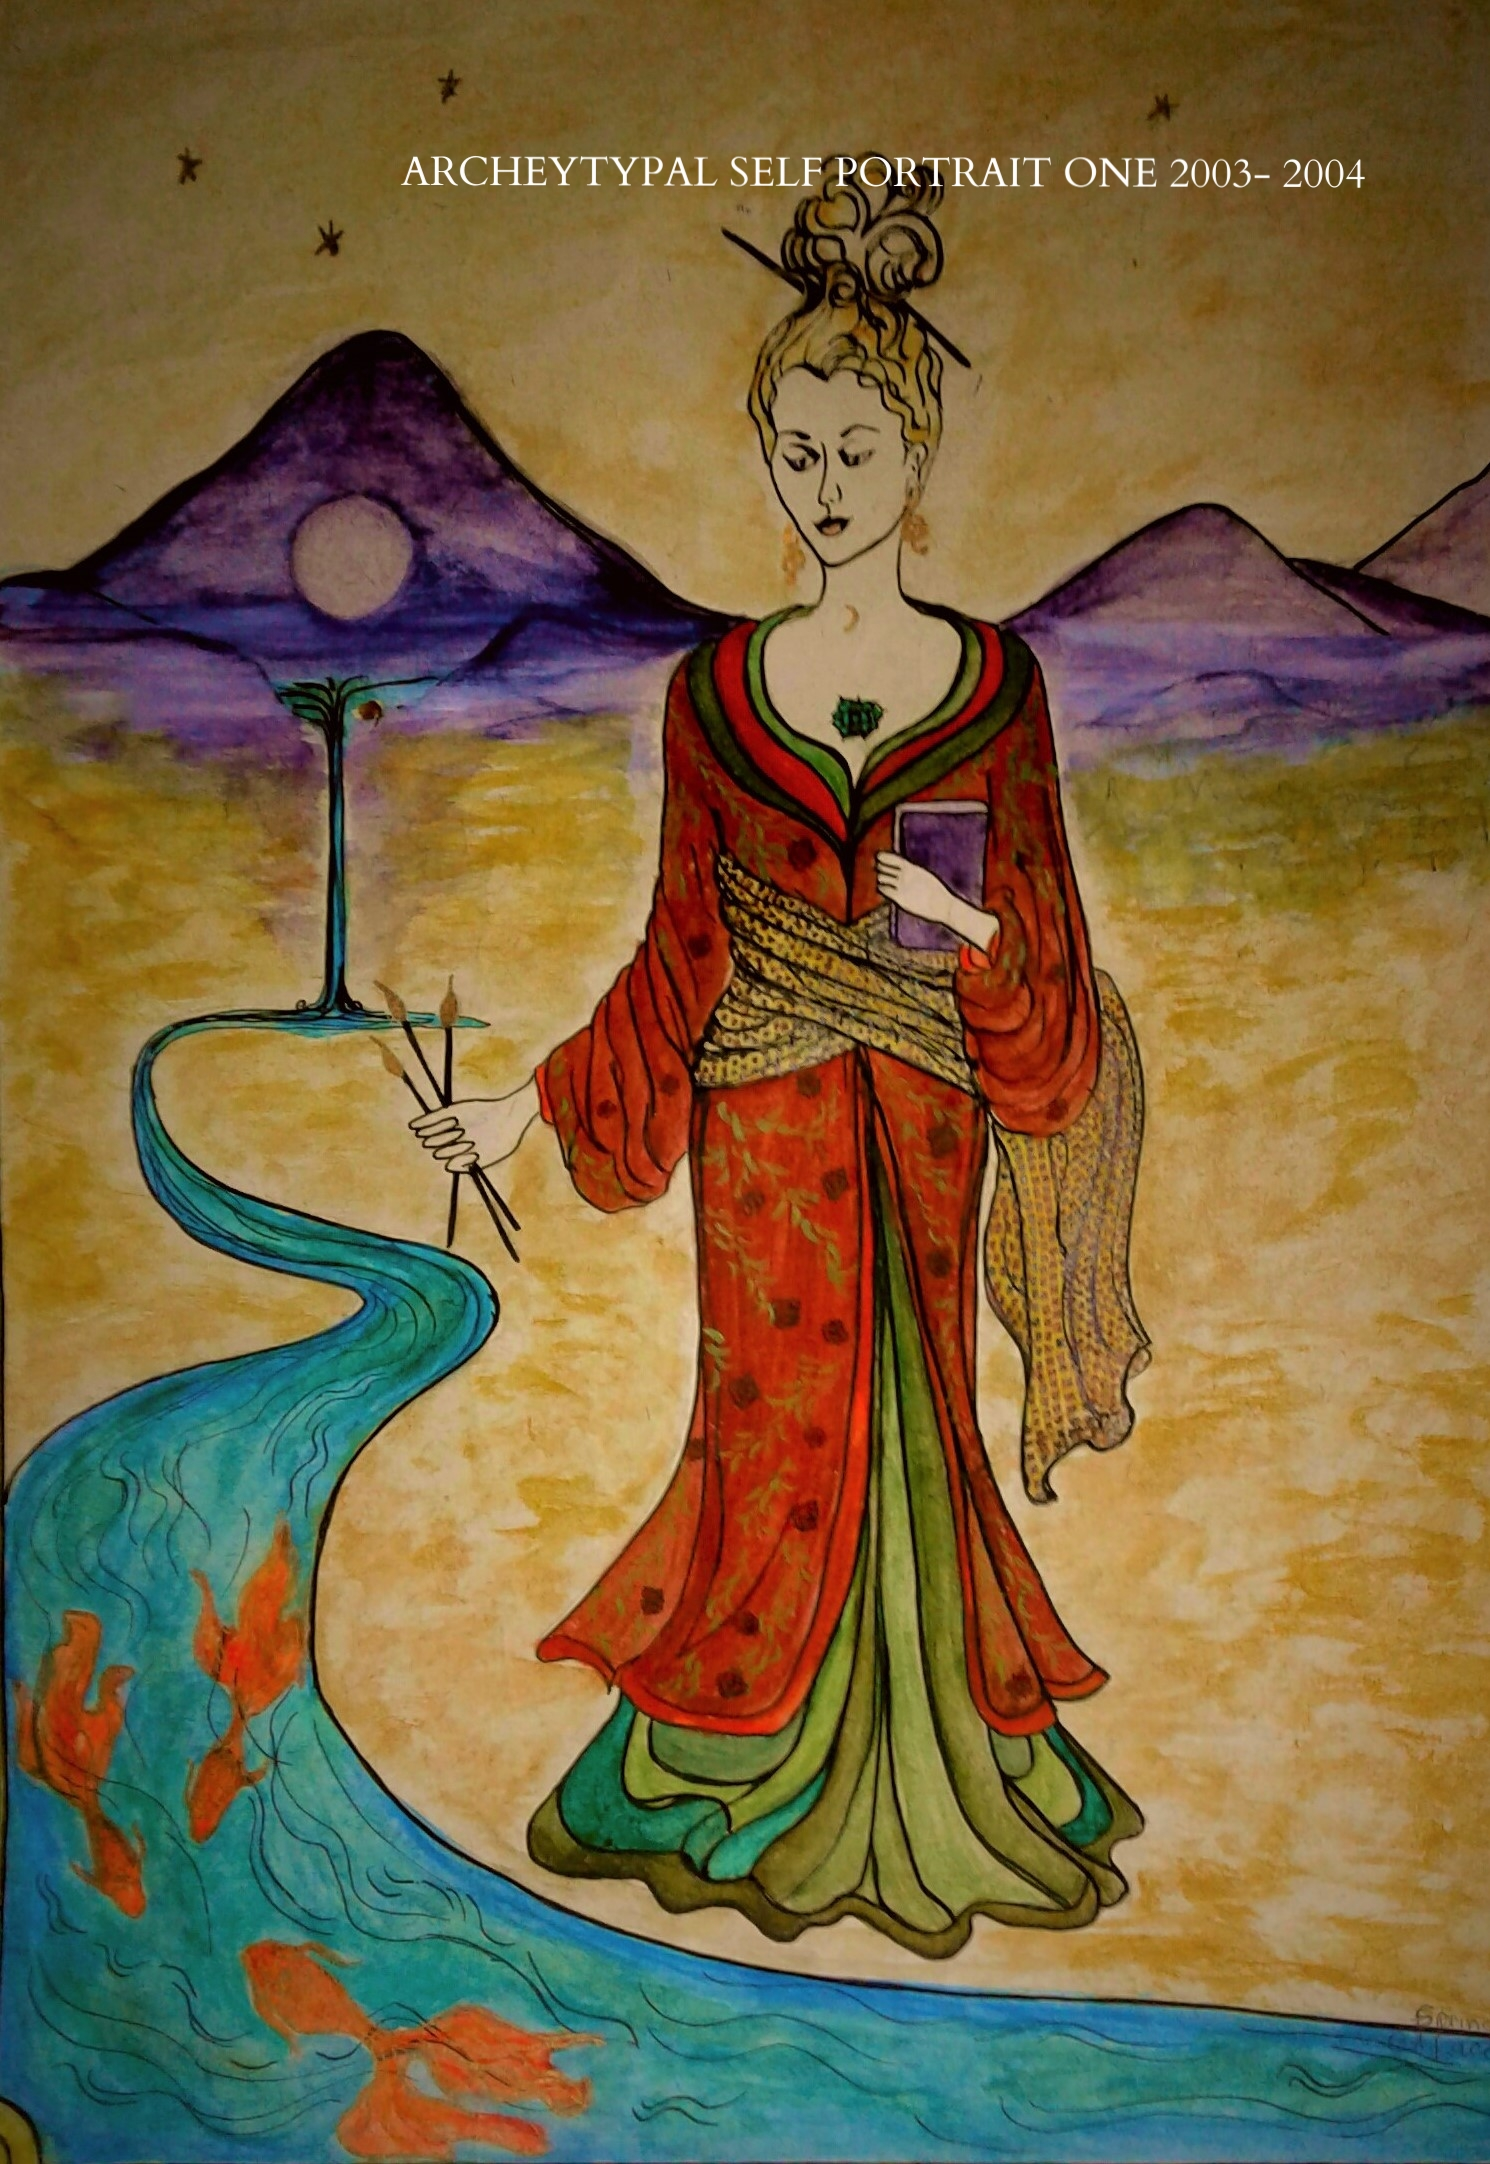 BIRTHED AFTER A LONG SPIRITUAL JOURNEY  CATHERINE LACOMBE